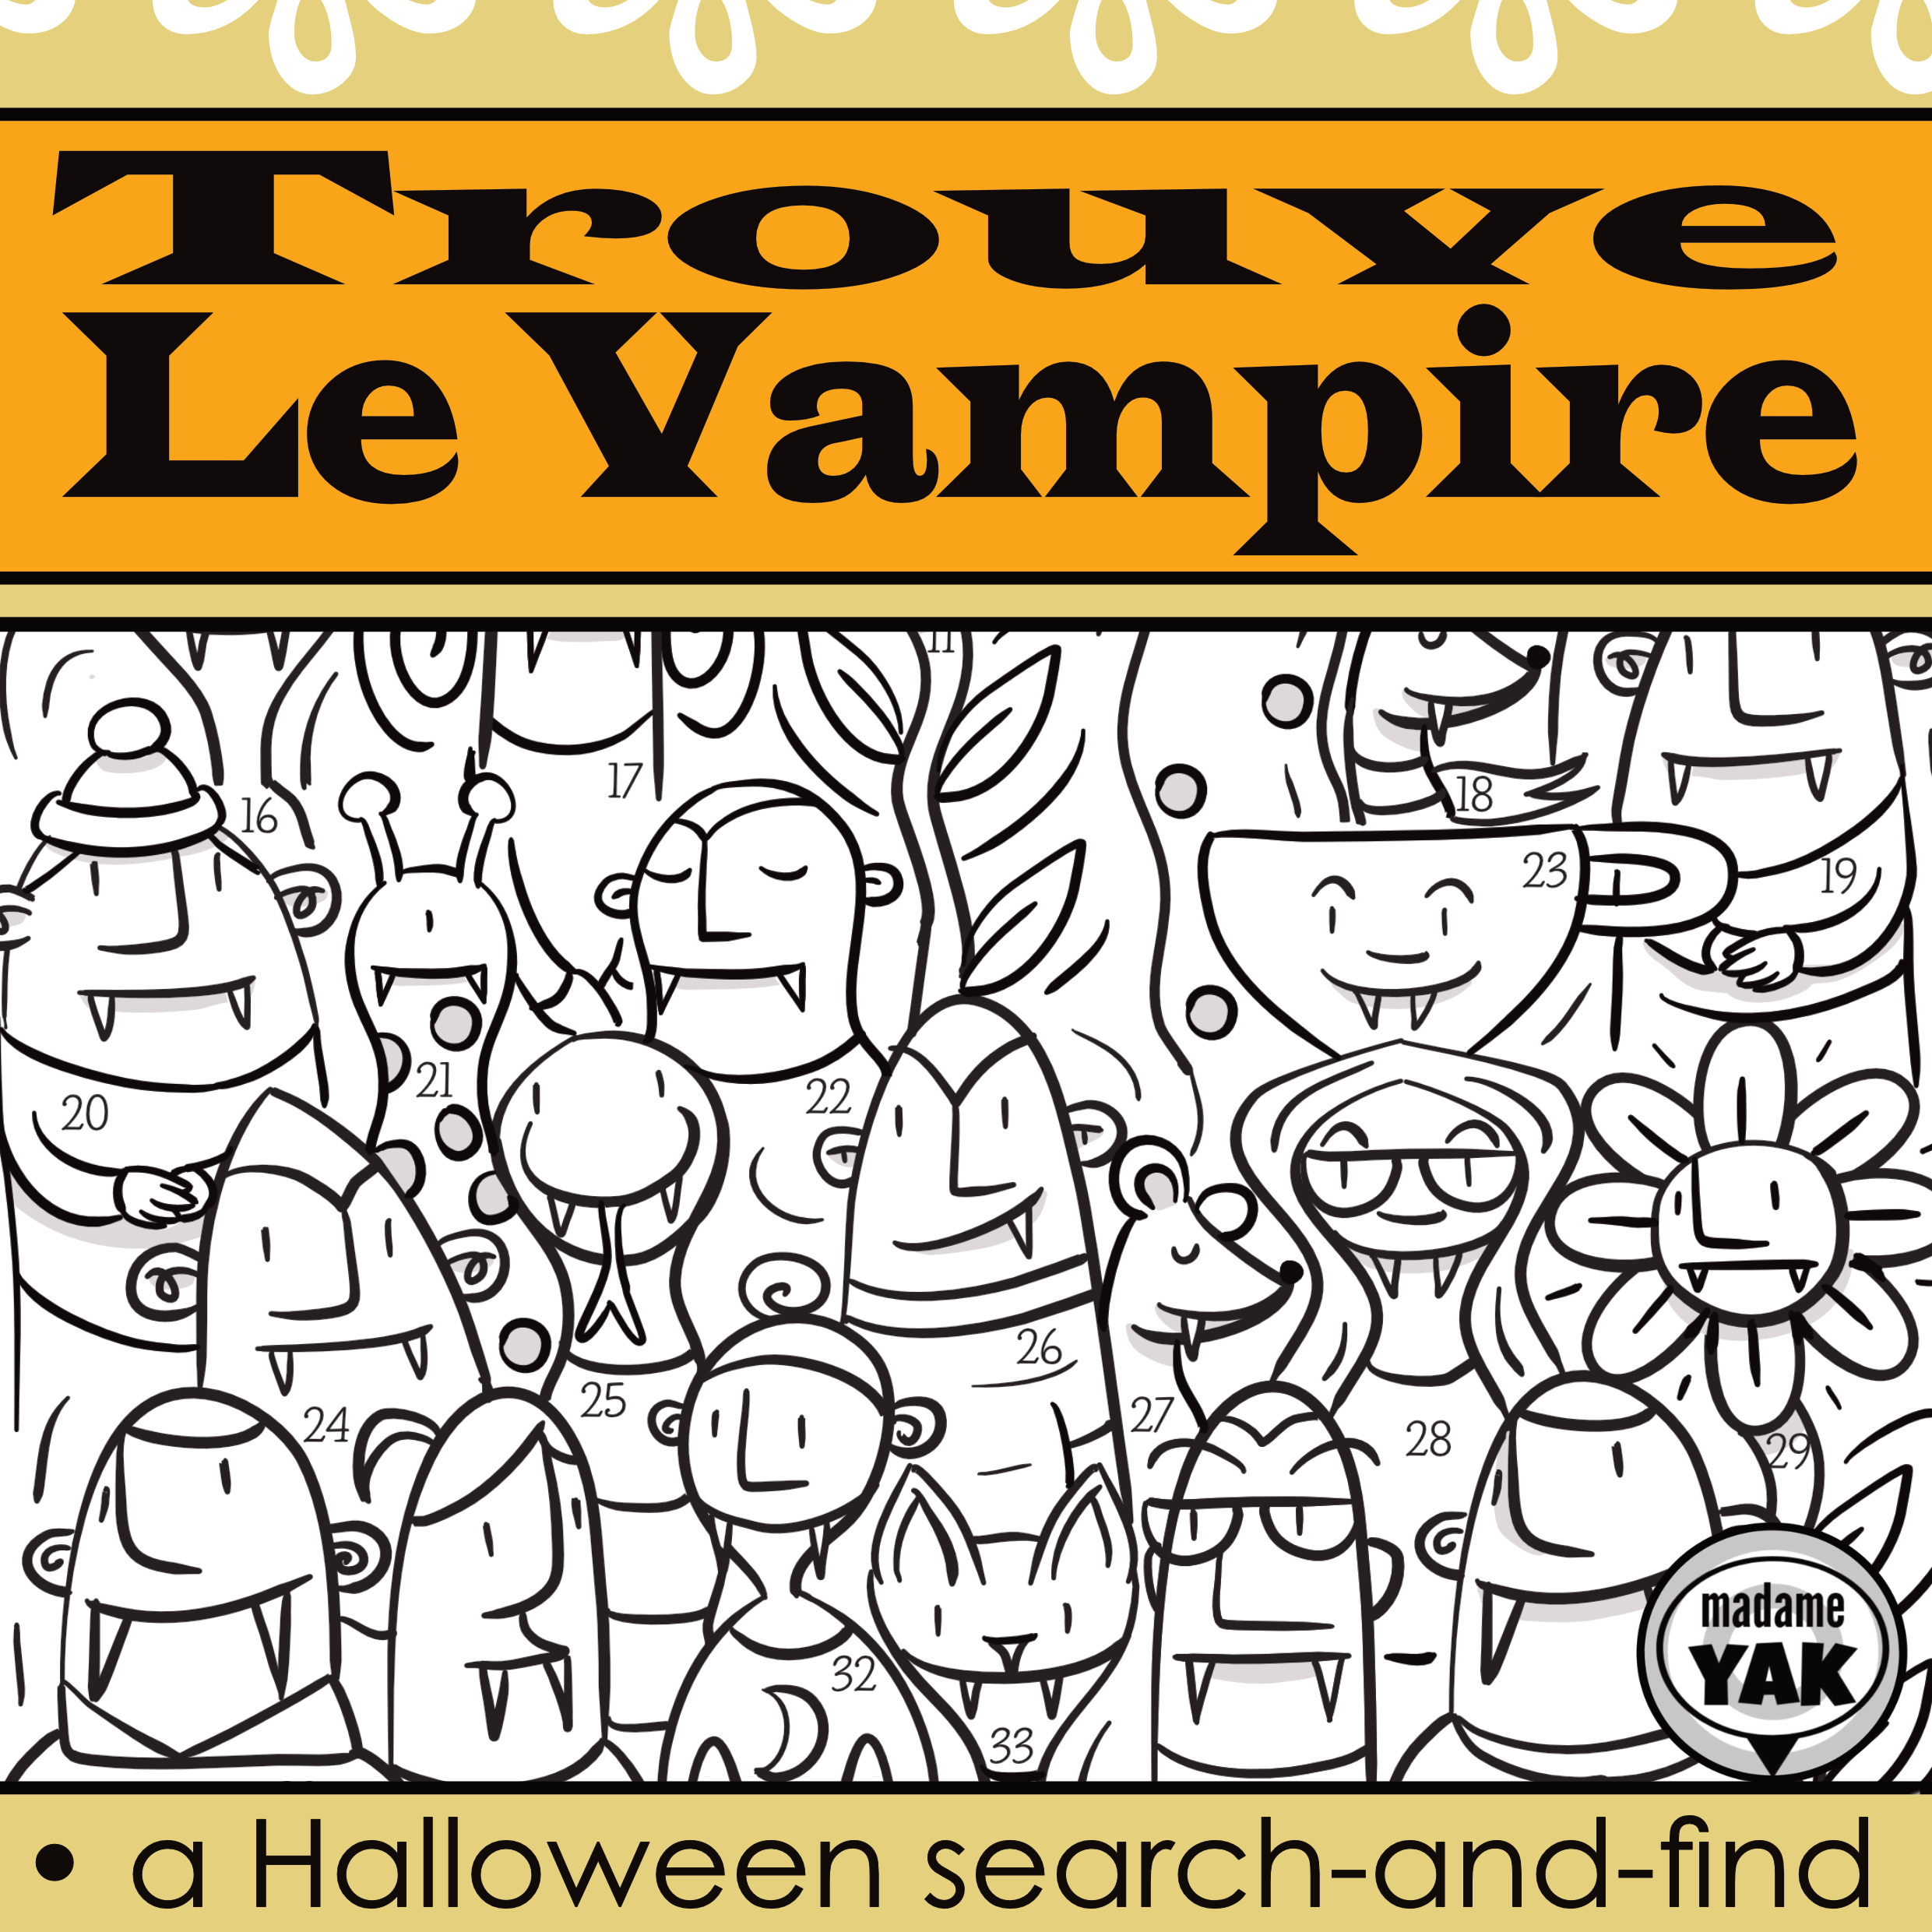 Trouve Le Vampire French Search And Find Halloween